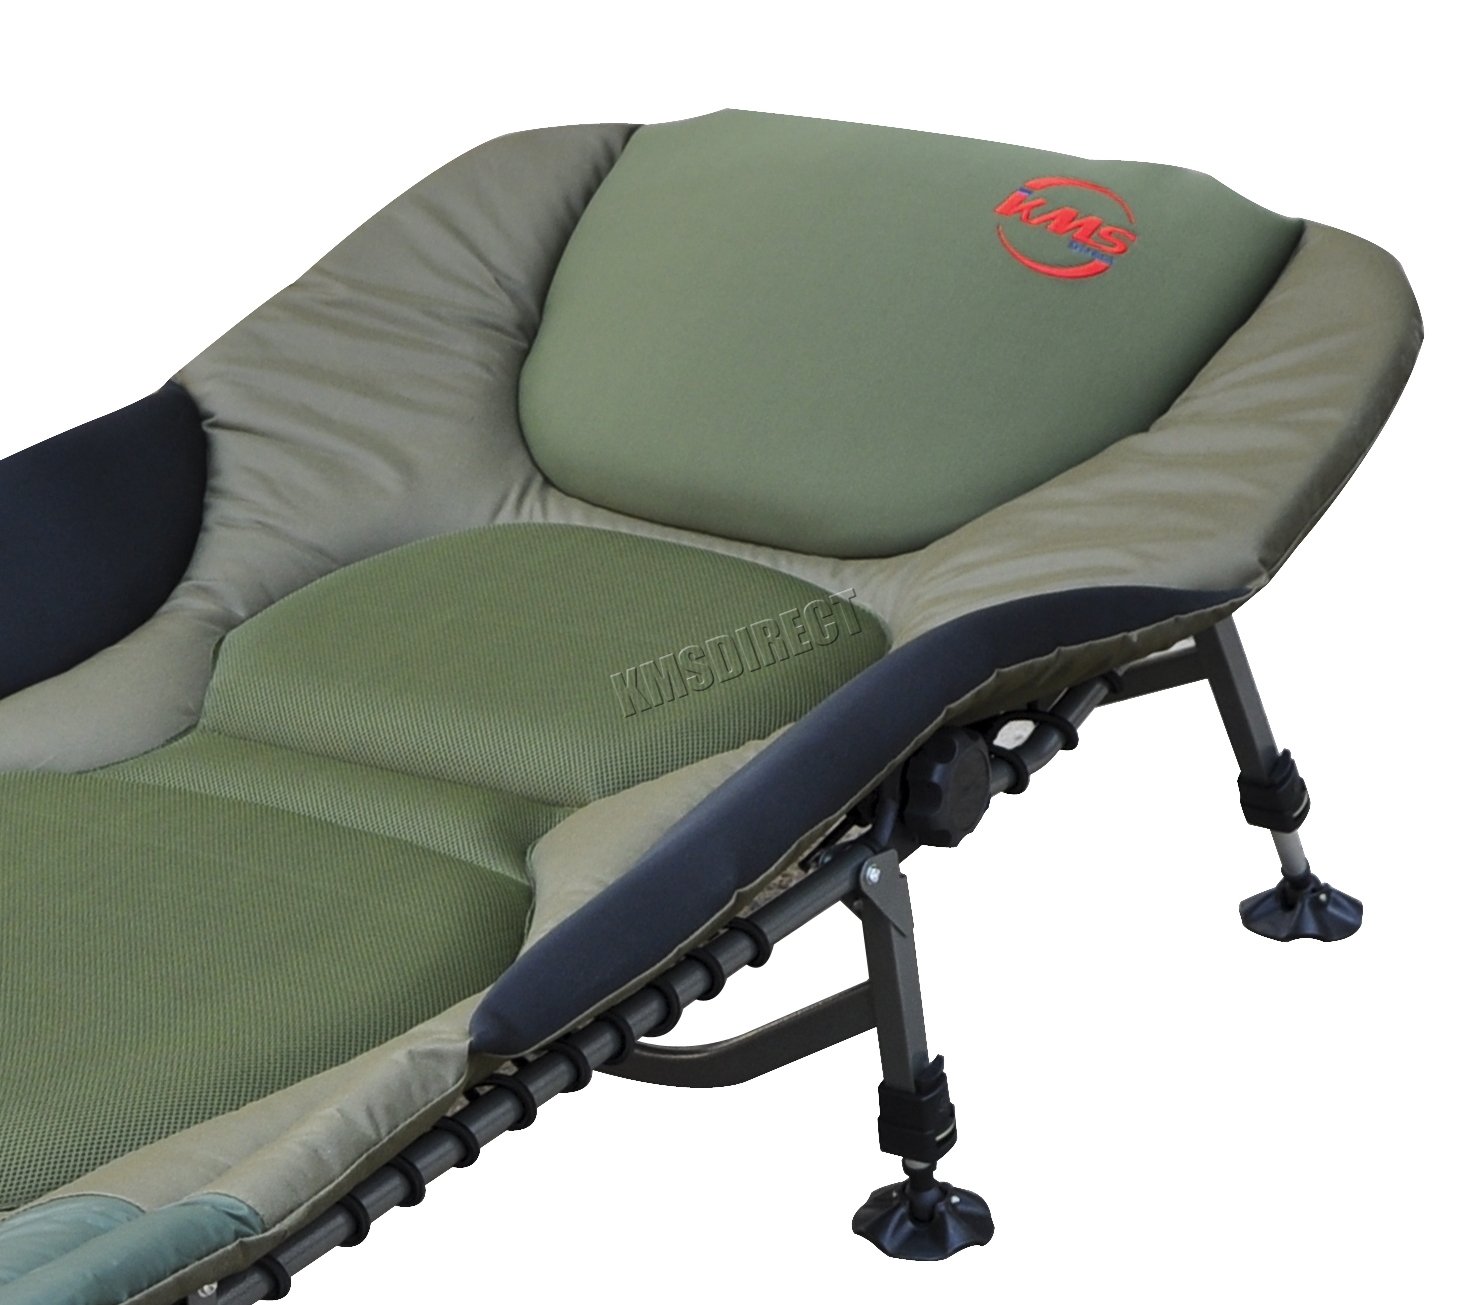 office chair neck support reclining desk portable carp fishing bed bedchair camping 8 adjustable legs pillow fb-022